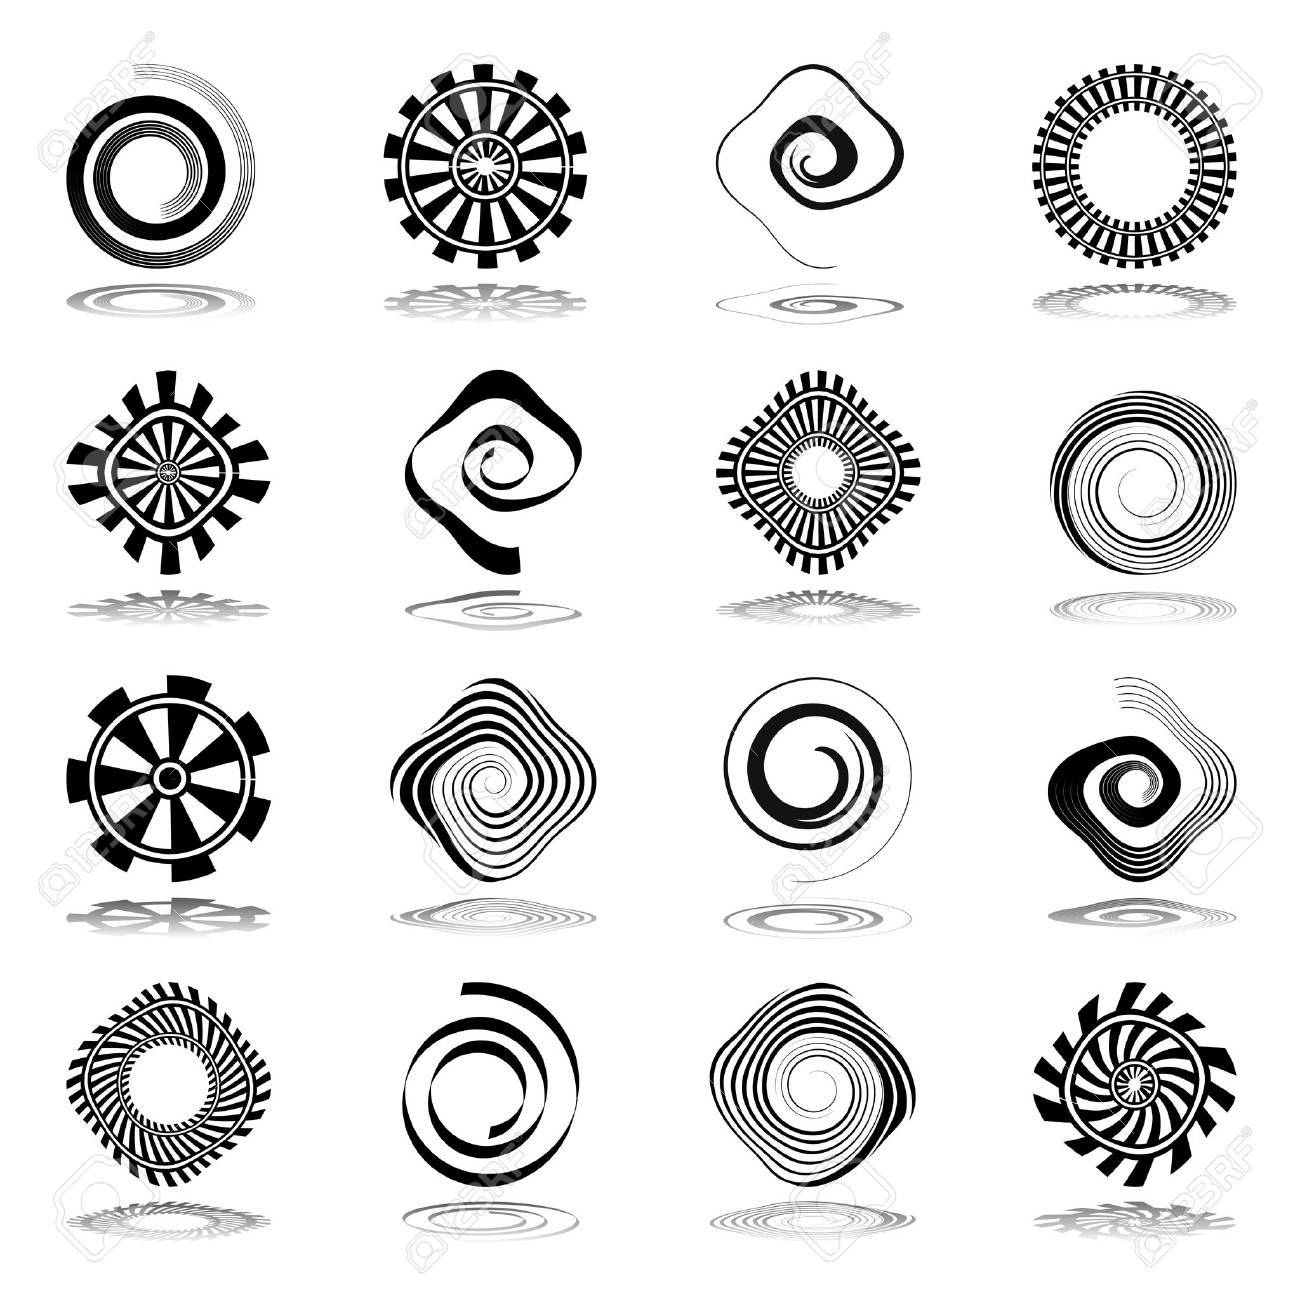 Design elements set. Spiral and rotation abstract icons. Vector art. - 39205653